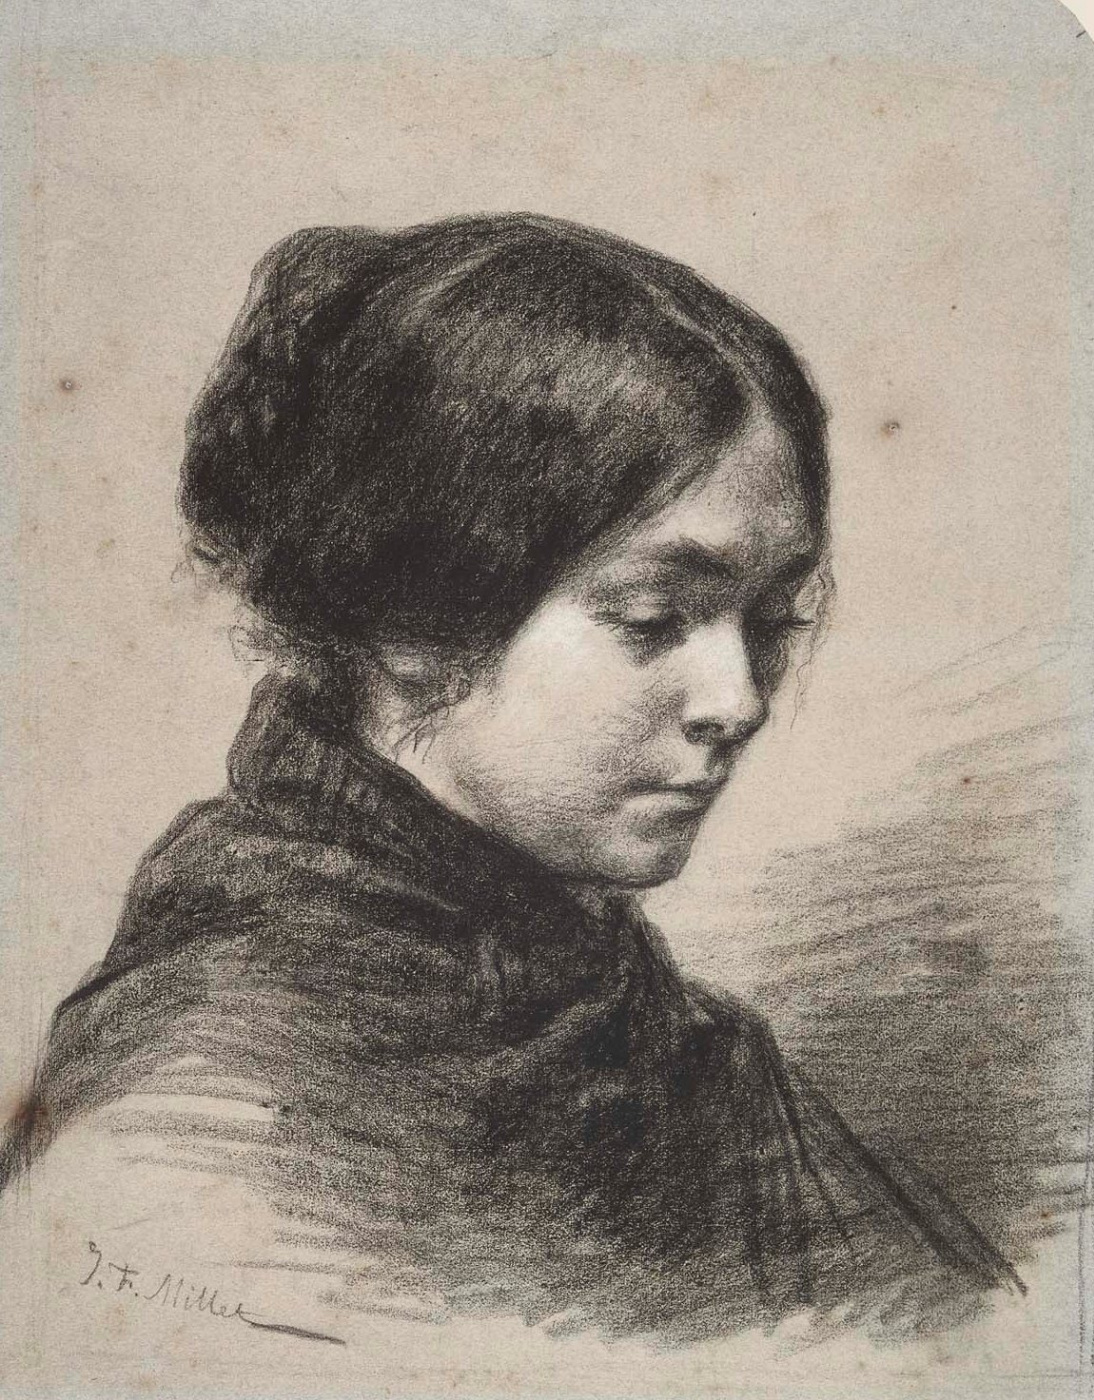 Jean-François Millet. Portrait of Madame Millet (Catherine Lemaire), the artist's second wife